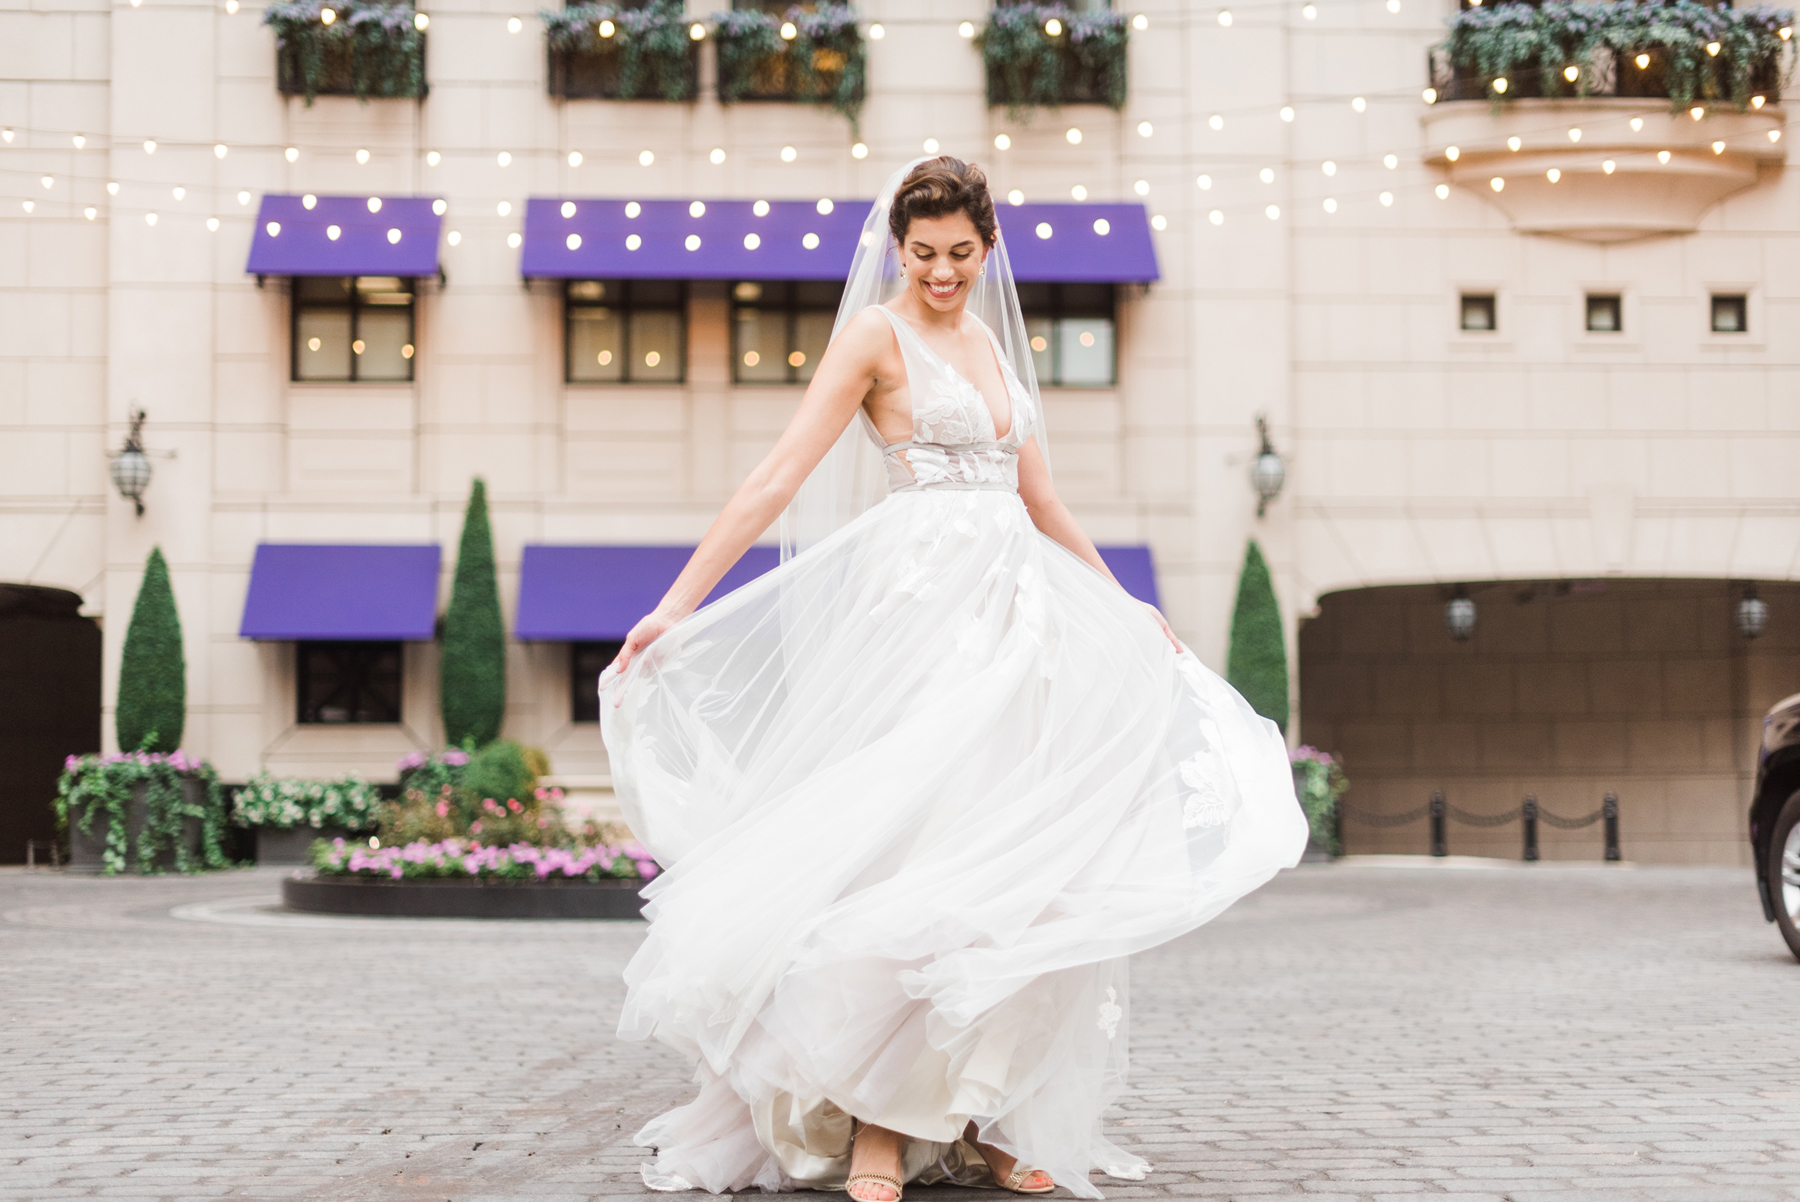 BHLDN Lakeshore in Love Danielle Heinson Photography (54)